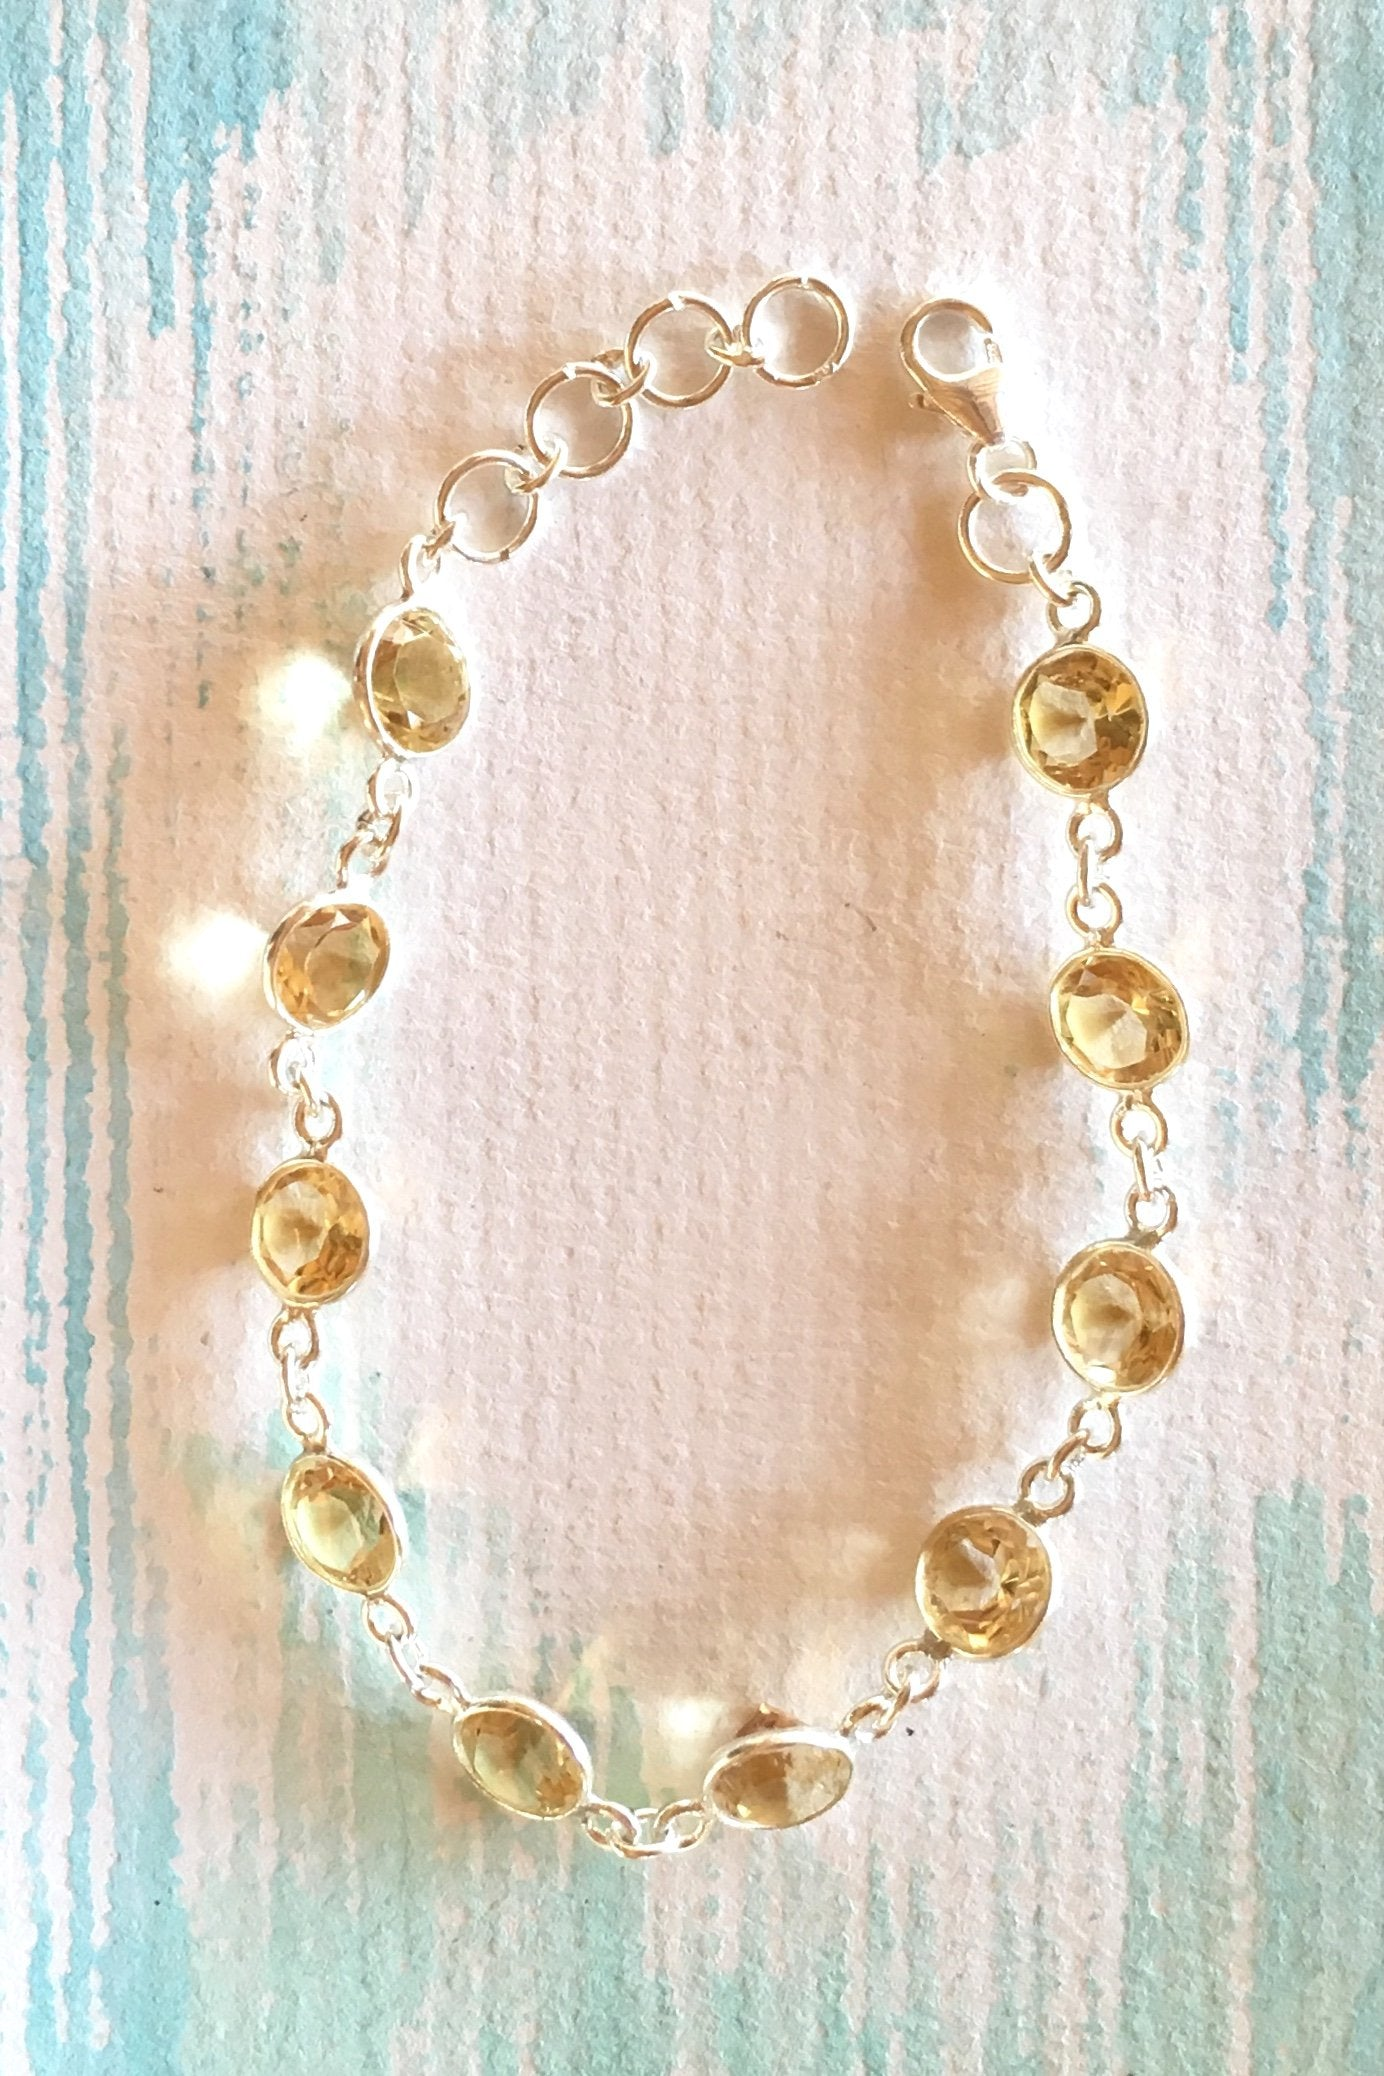 Oracle yellow citrine gemstone bracelet